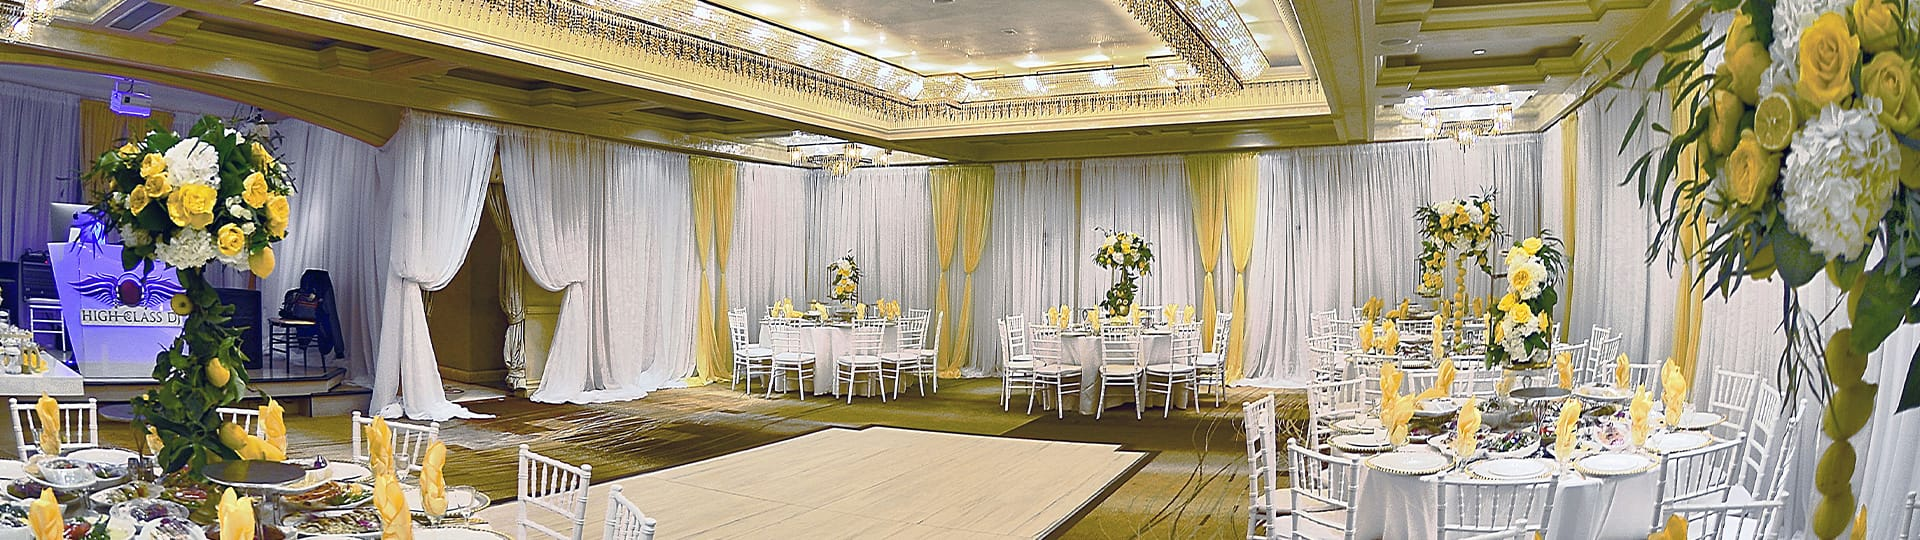 Nairi Banquet Hall - Special Events Venue